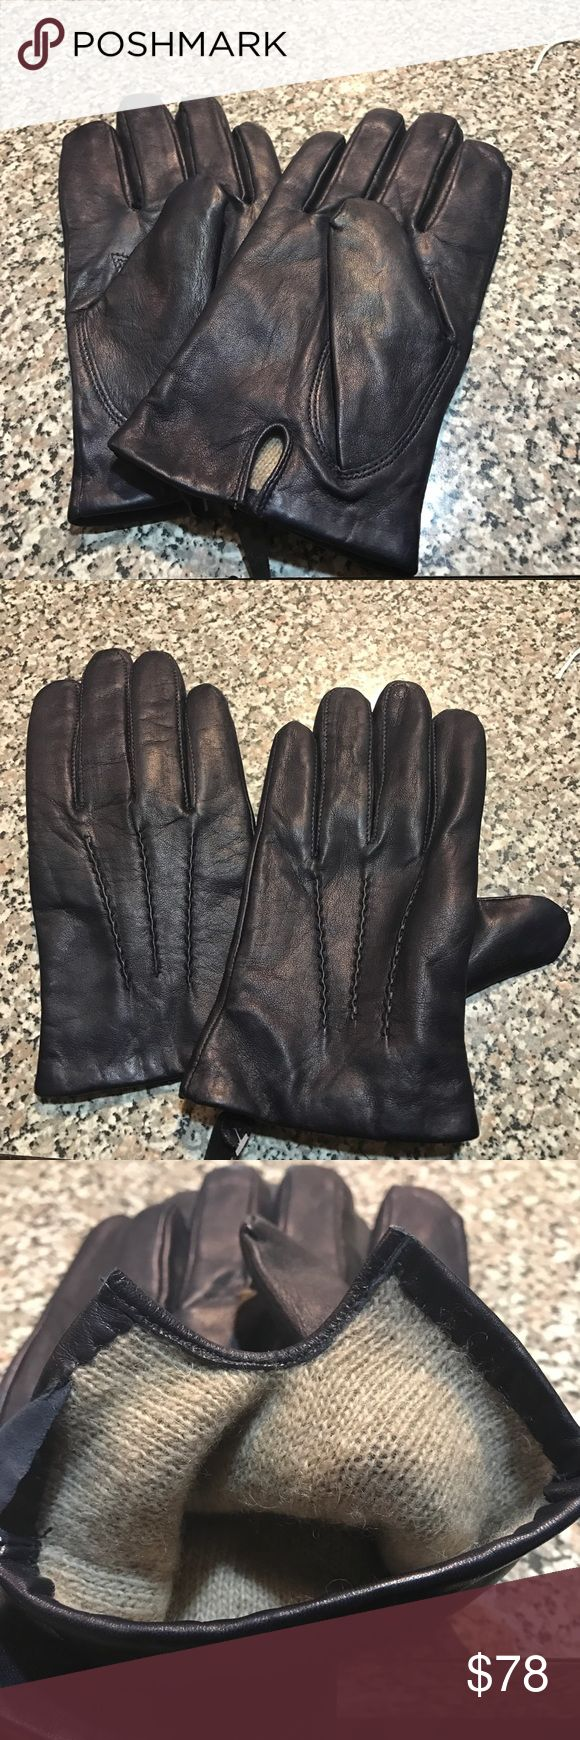 Nappa Sheepskin Gloves Genuine leather gloves. Really warm and never been worn before! These are BRAND NEW. Amazing for winter!!!! Gant Accessories Gloves & Mittens